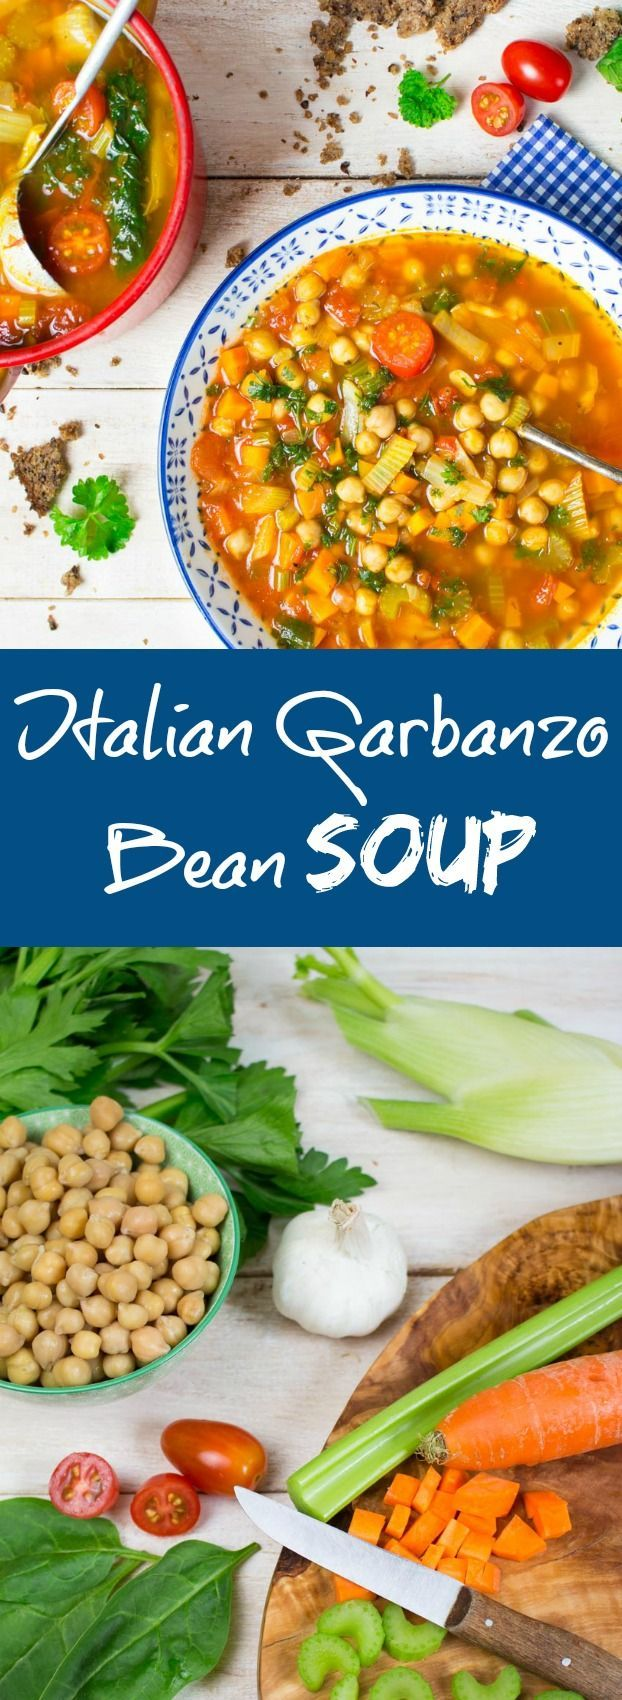 This Italian Garbanzo Bean Soup is super easy to make and packed with flavor and nutrients! Just make sure to cut out the oil  (you never need oil)